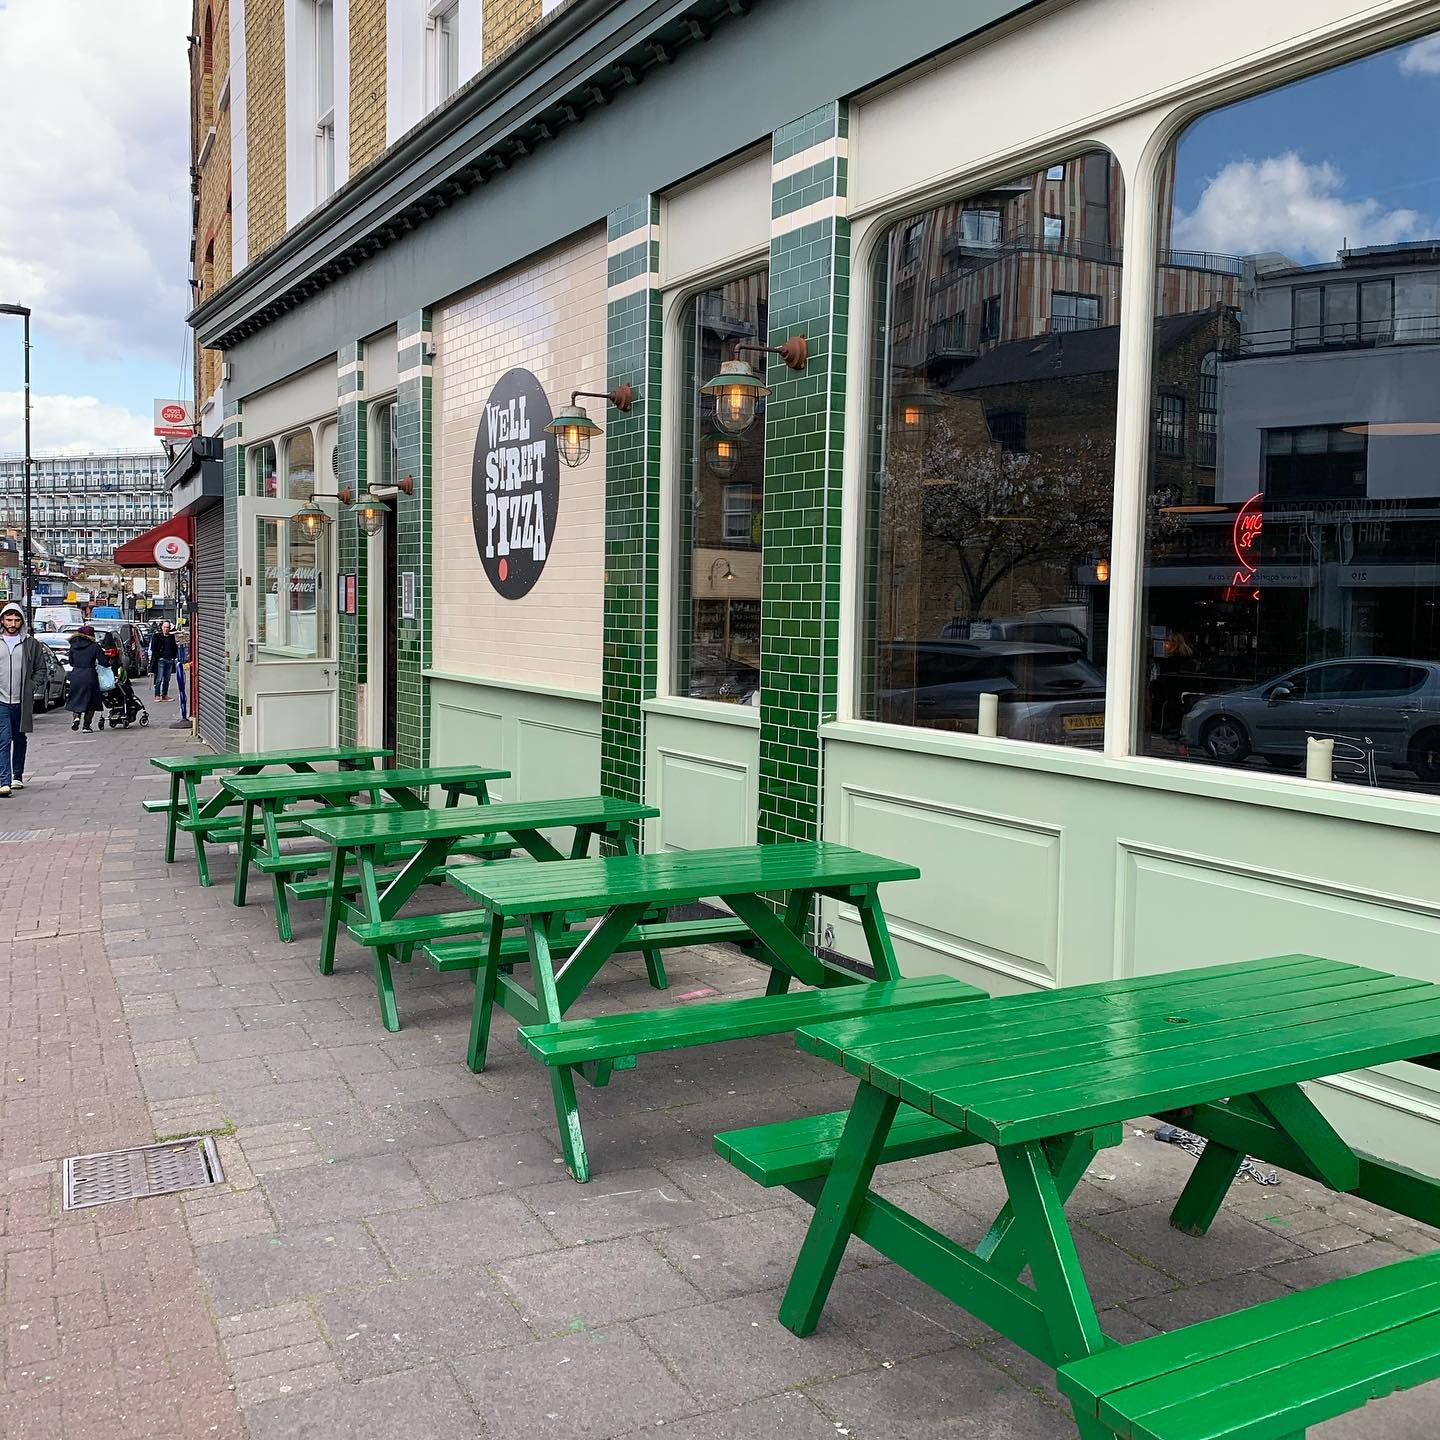 Here we go! Shiny fresh tables ready for bums, pizzas and pints. The Pizza Terrace is officially open 🥳 . . . #pizza #outside #pints #beer #cocktails #youwantapizzame #sunsoutbunsout #hackney #london #lockdown